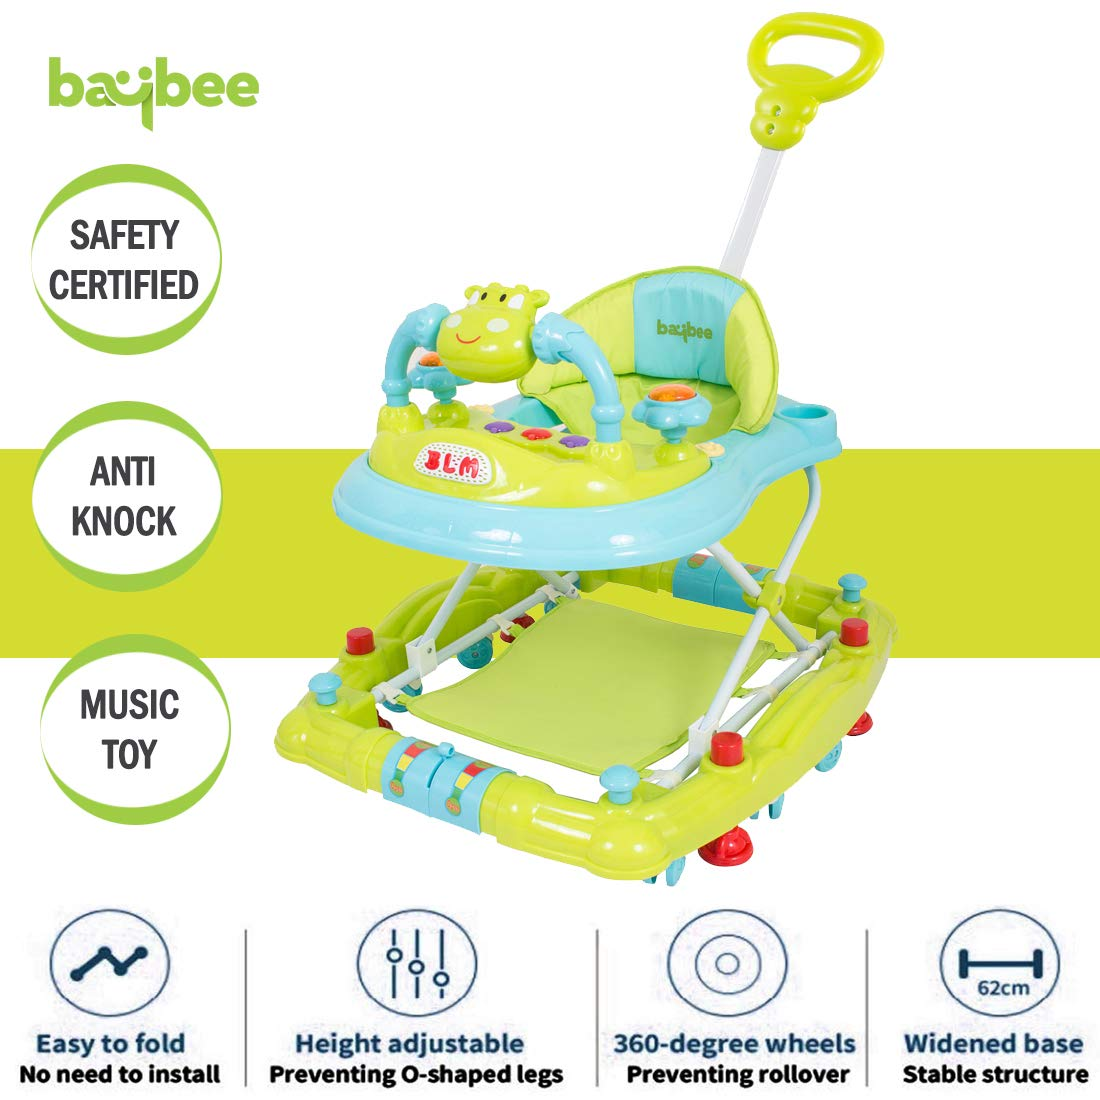 Baybee Forza Baby Walker Round Kids Walker For Babies Cycle